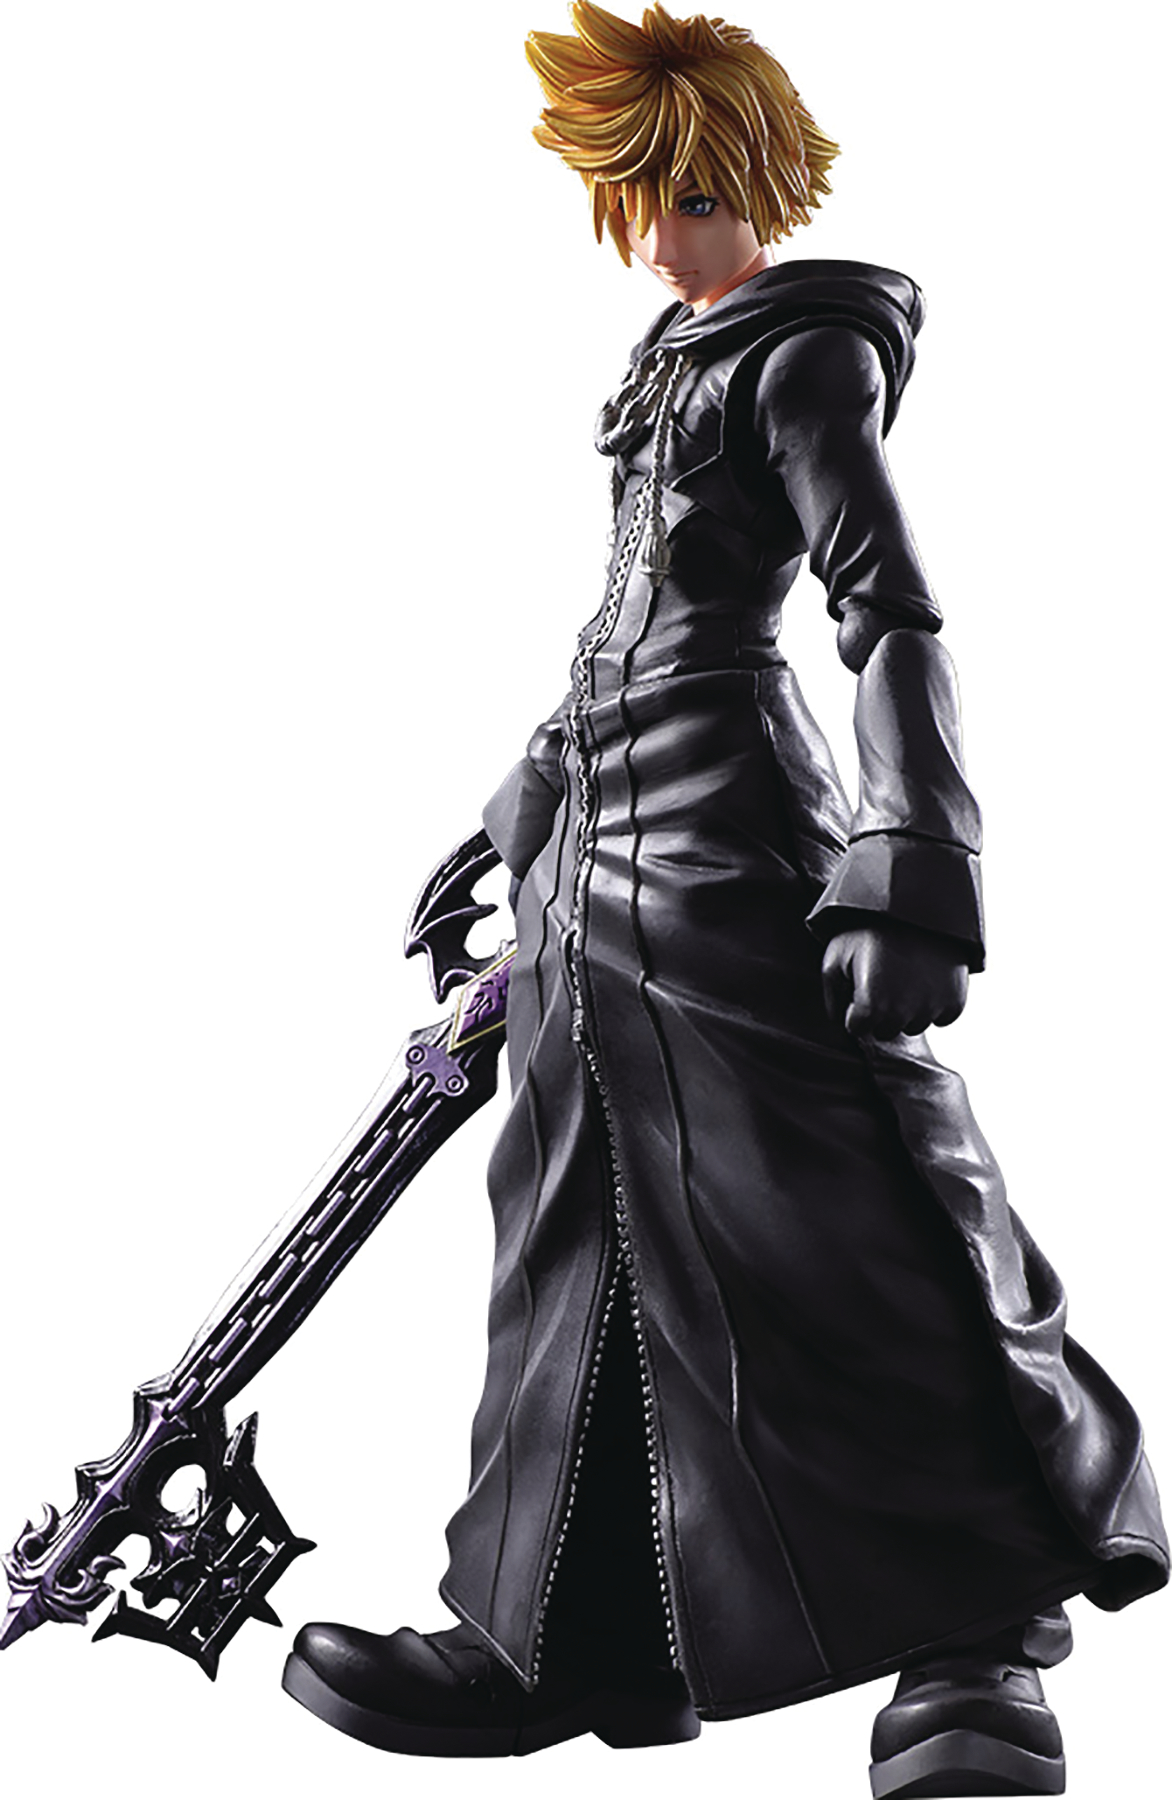 KINGDOM HEARTS II ROXAS PLAY ARTS KAI AF ORG XIII VER